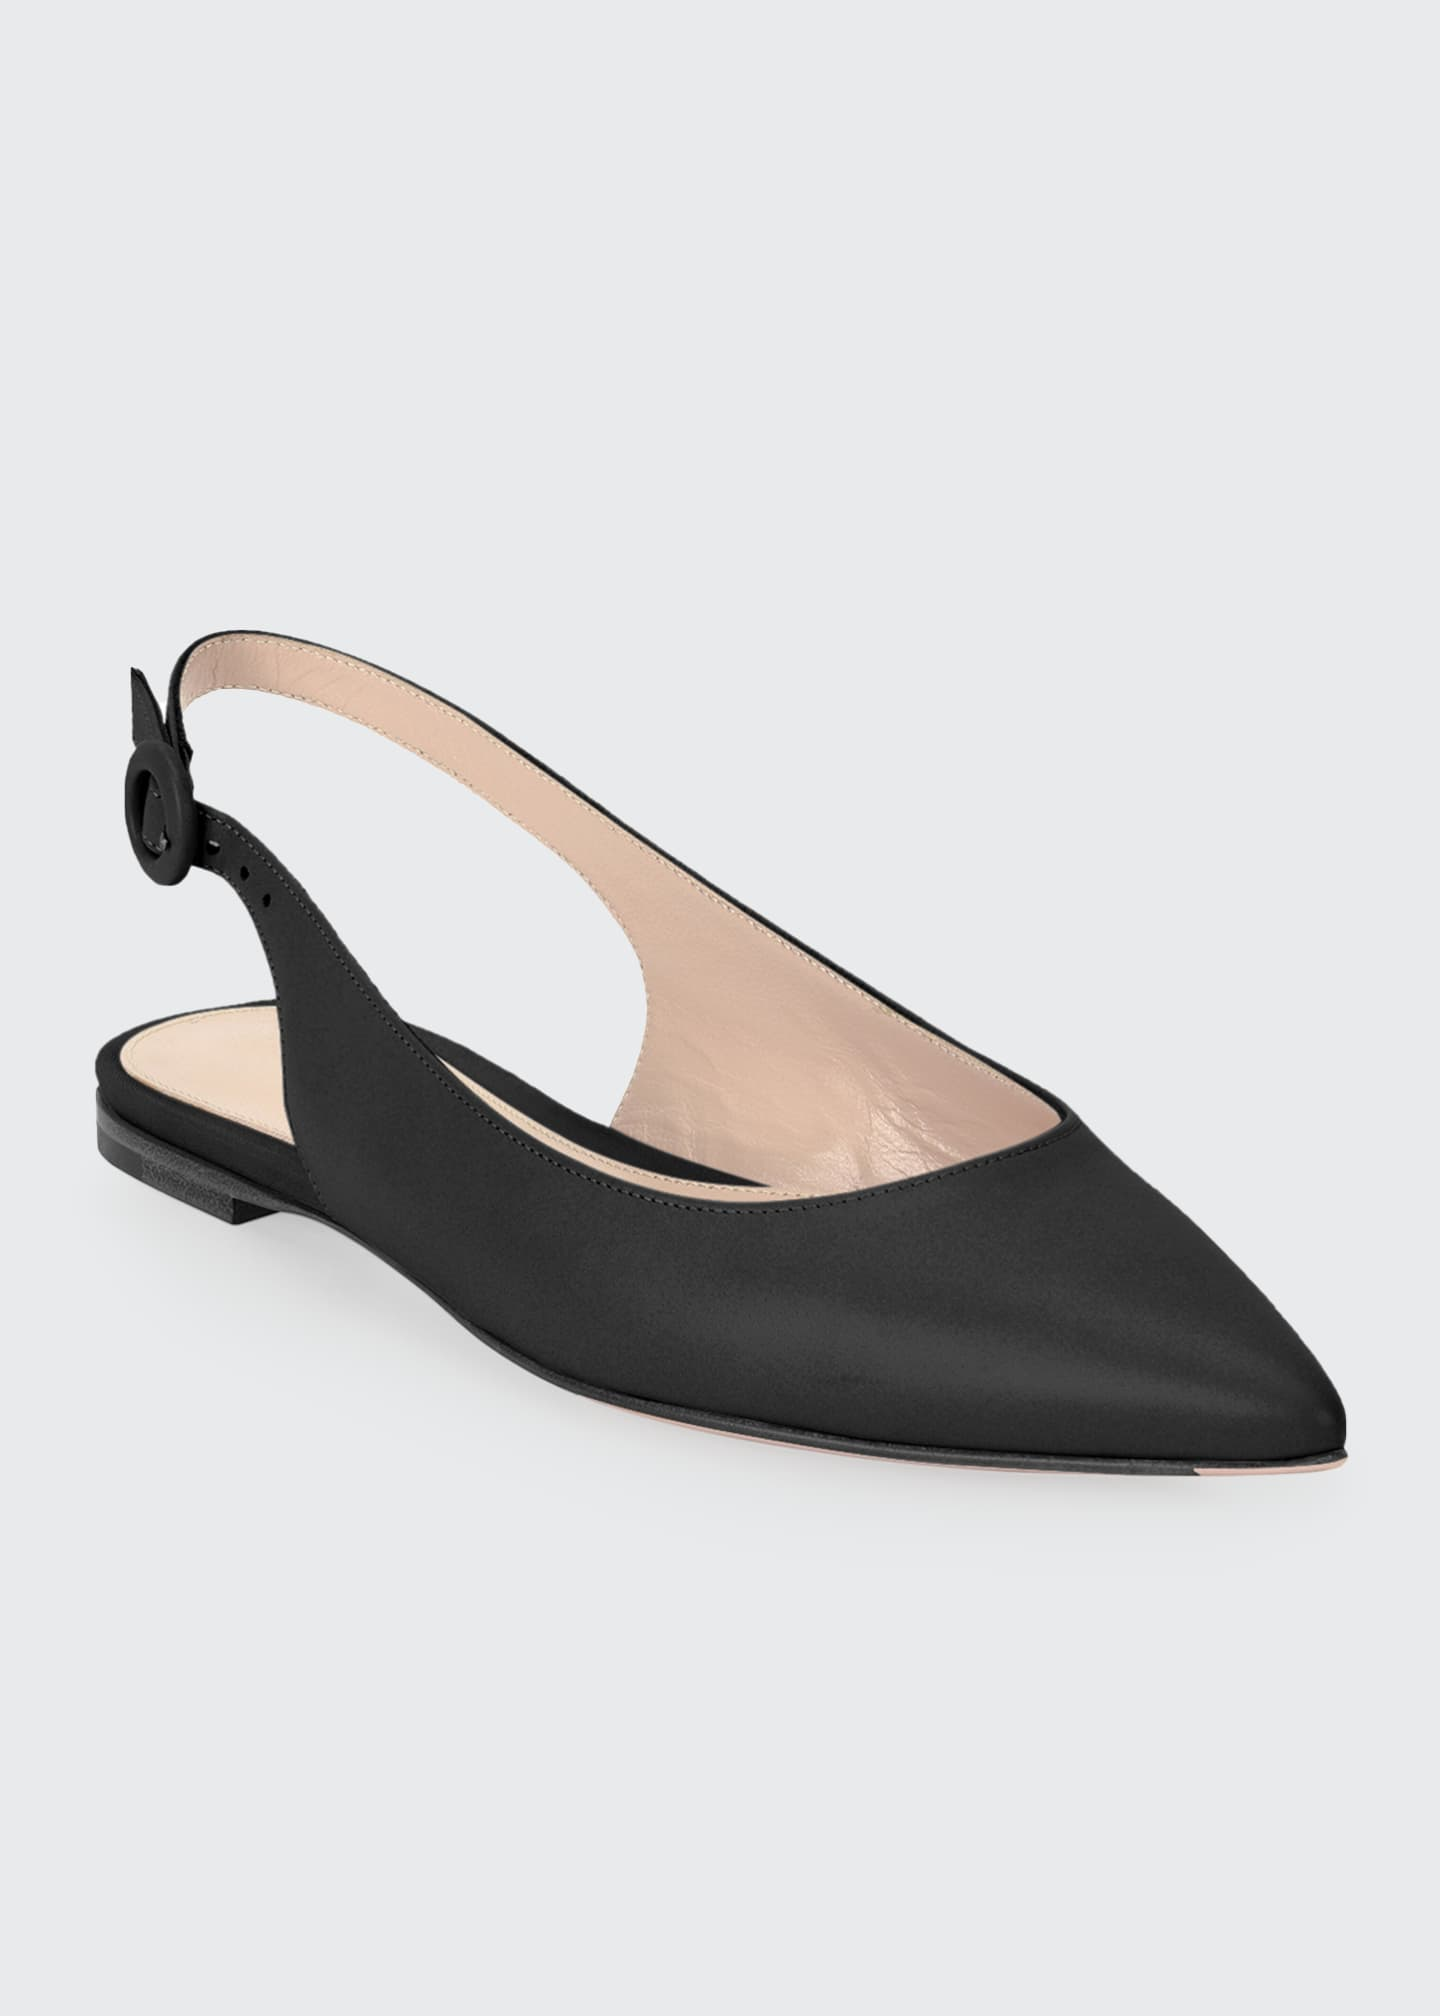 Gianvito Rossi Leather Pointed-Toe Slingback Flats